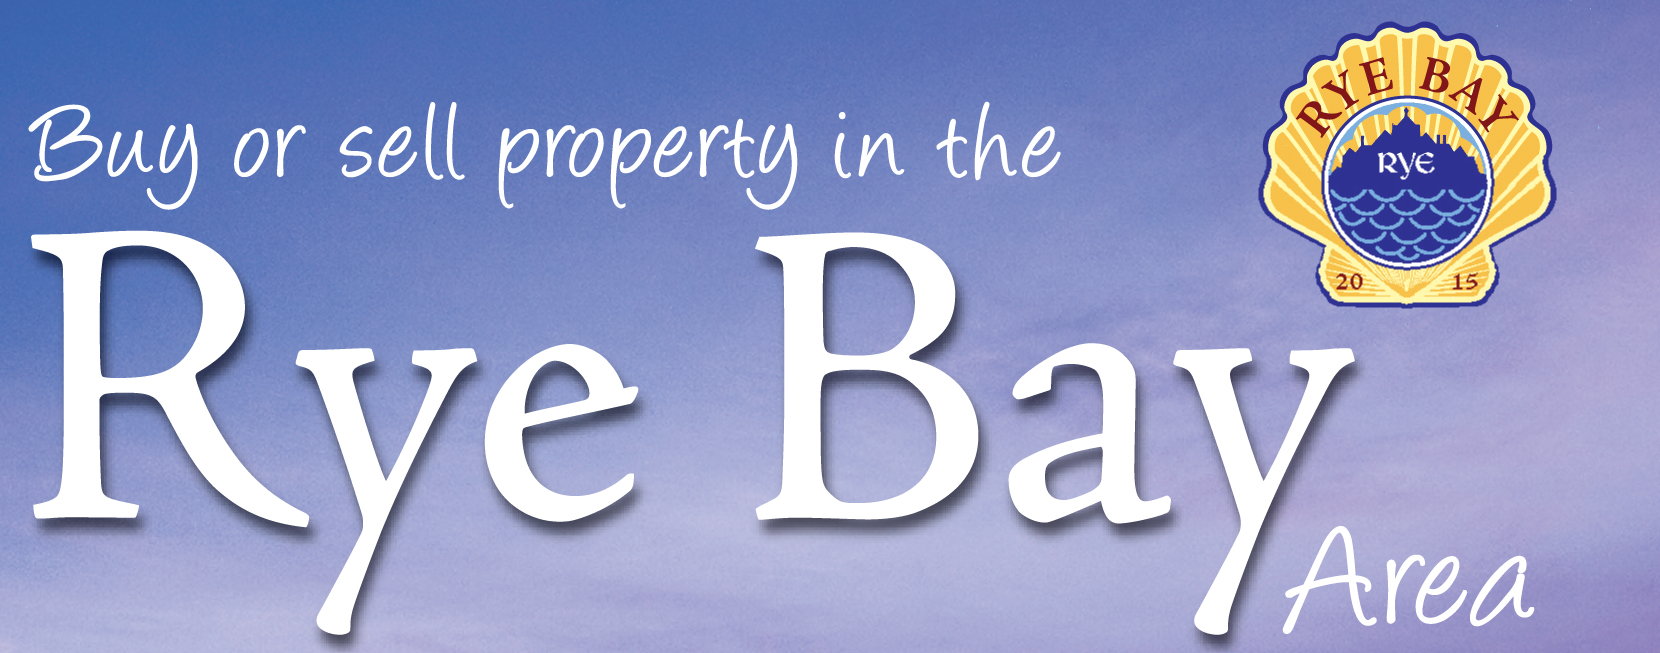 Buy a Property in the Rye Bay Area